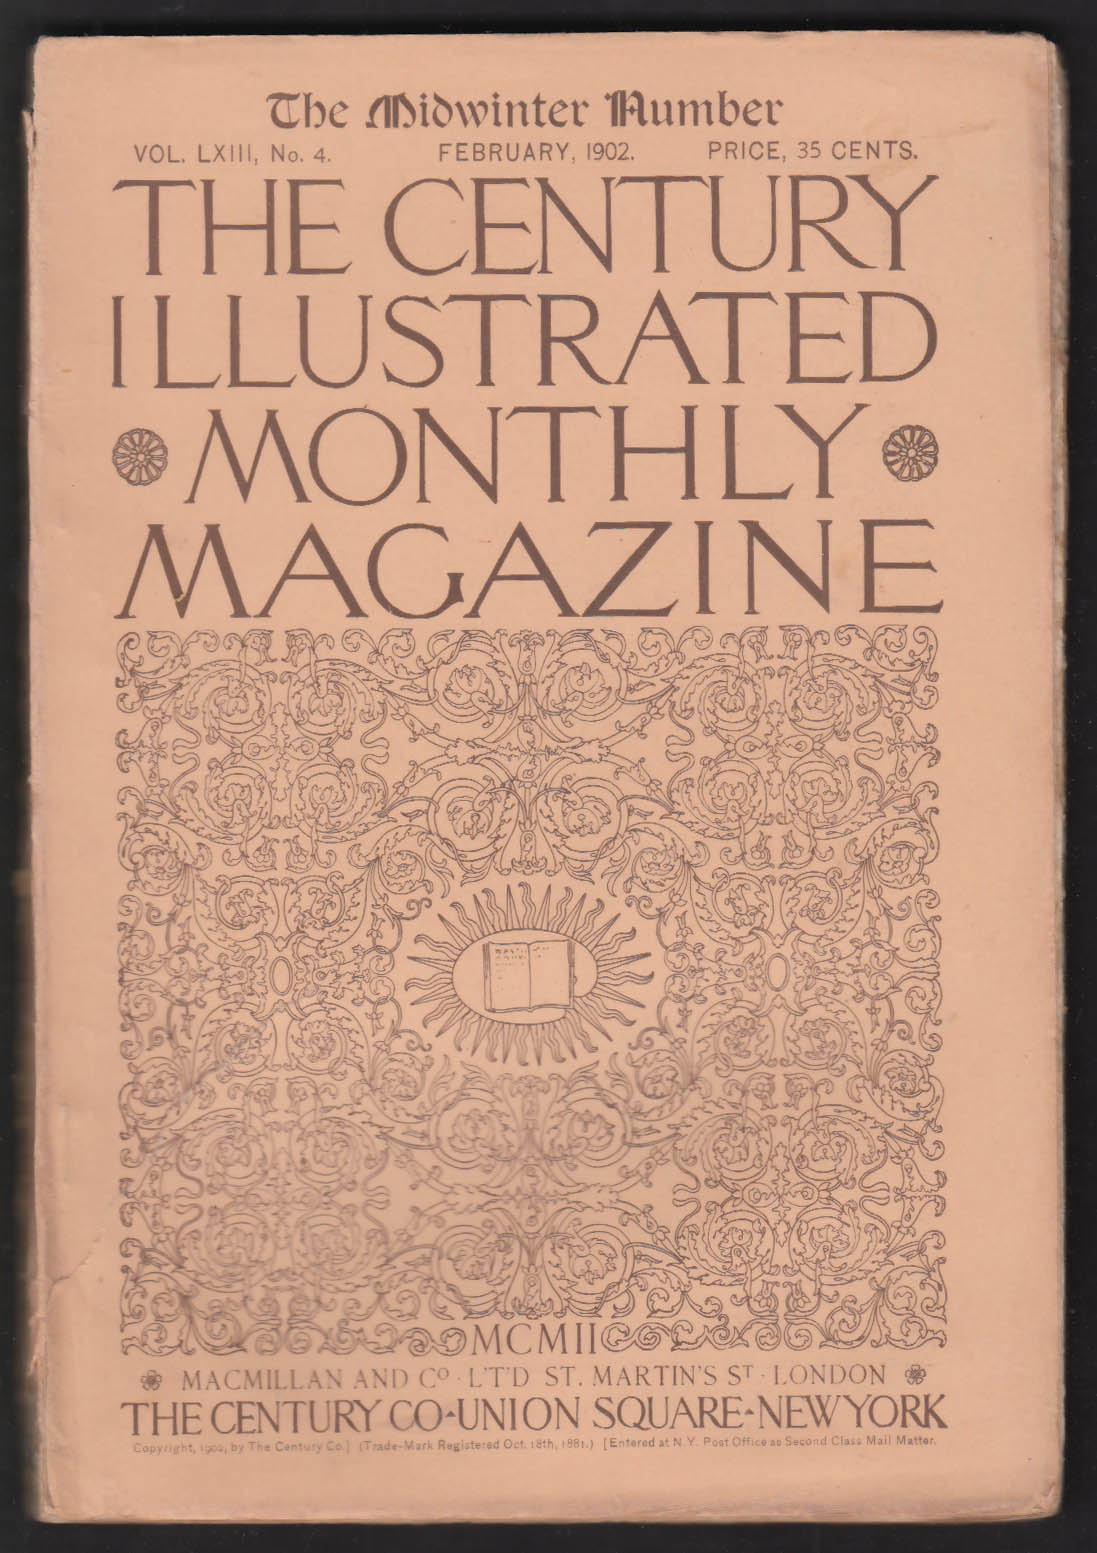 CENTURY ILLUSTRATED MONTHLY Negro Songs Frederic Remington Roger Riordan 2 1902